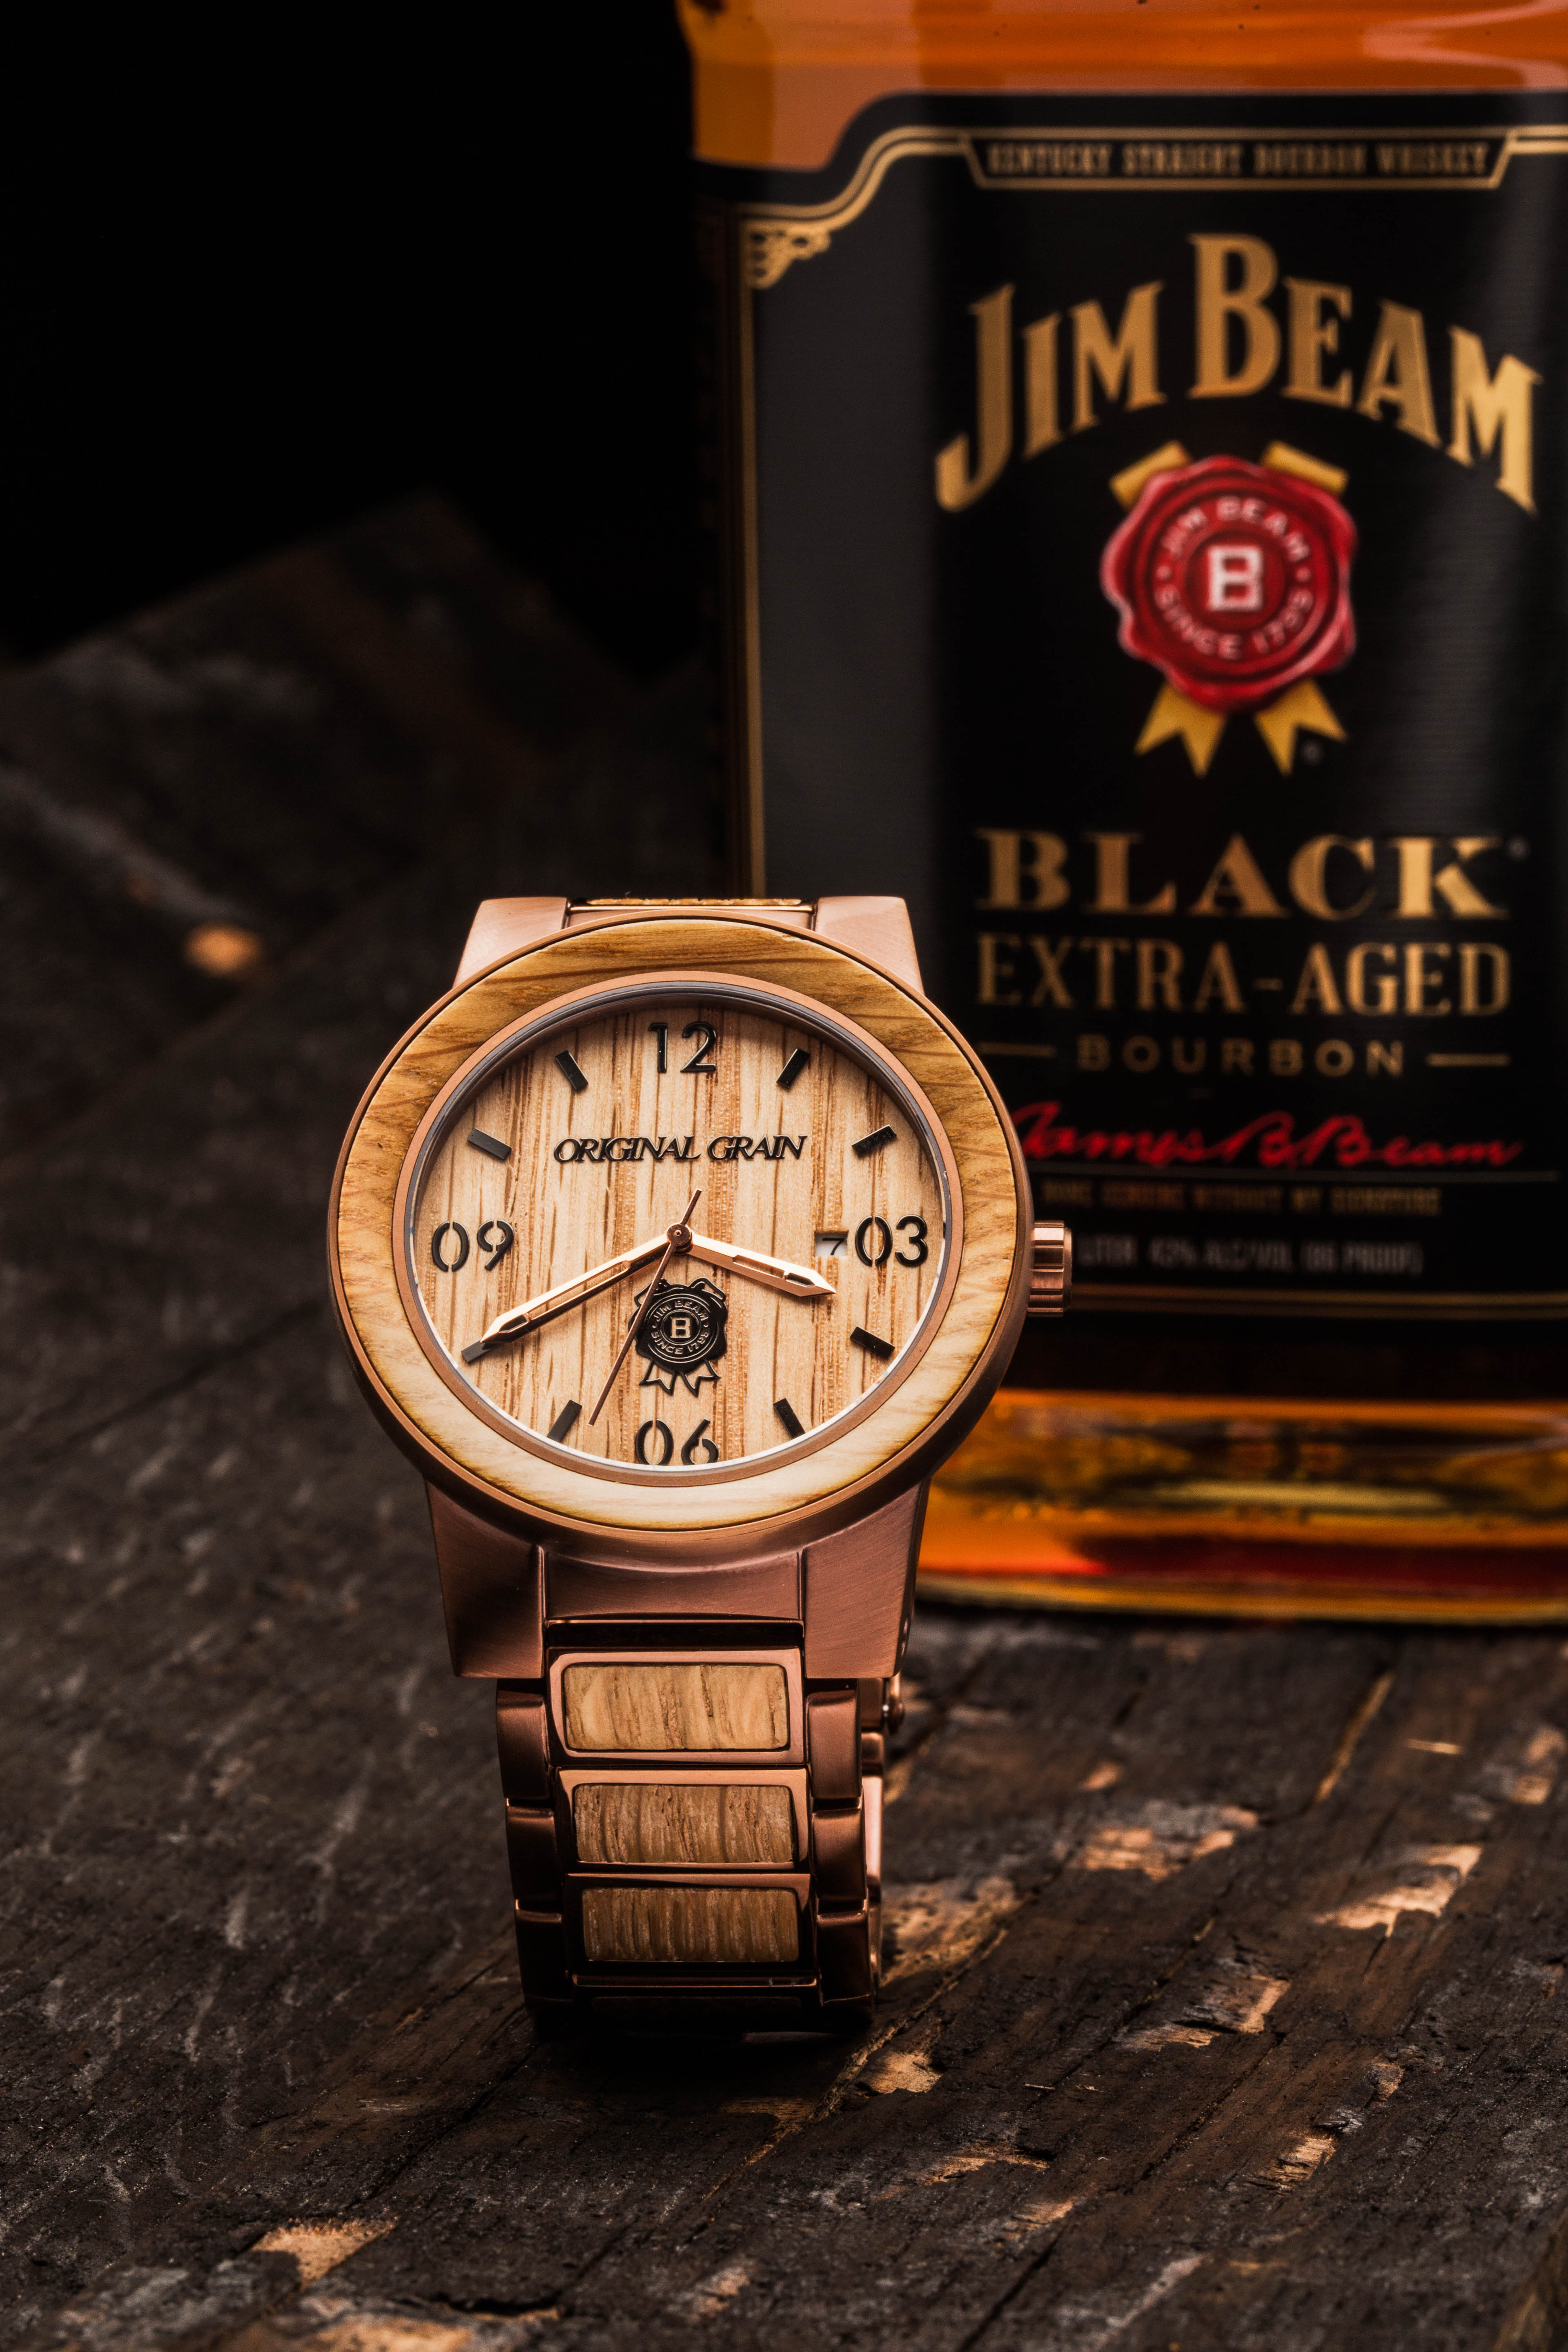 Original Grain Jim Beam A Must Have Watch For The Modern